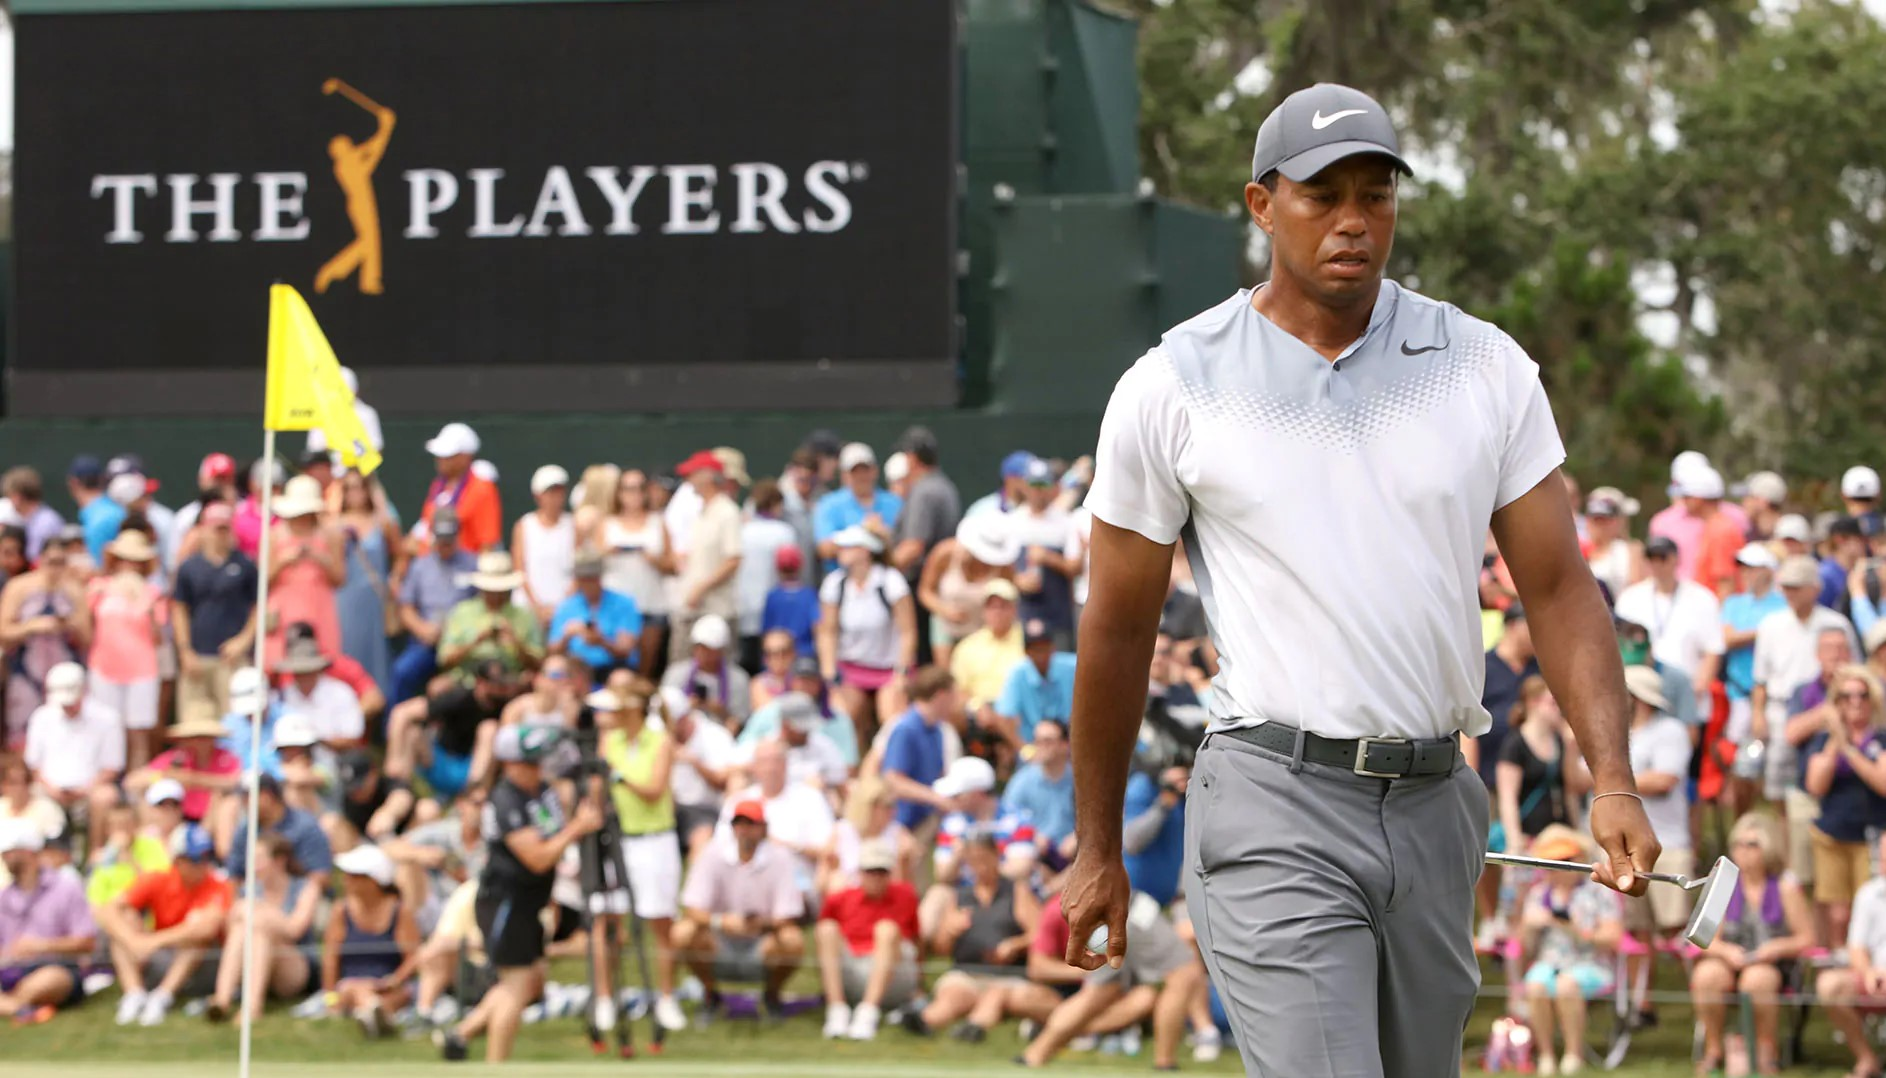 Tiger Woods tại The Players Championship 2020. (Ảnh: Getty Images)